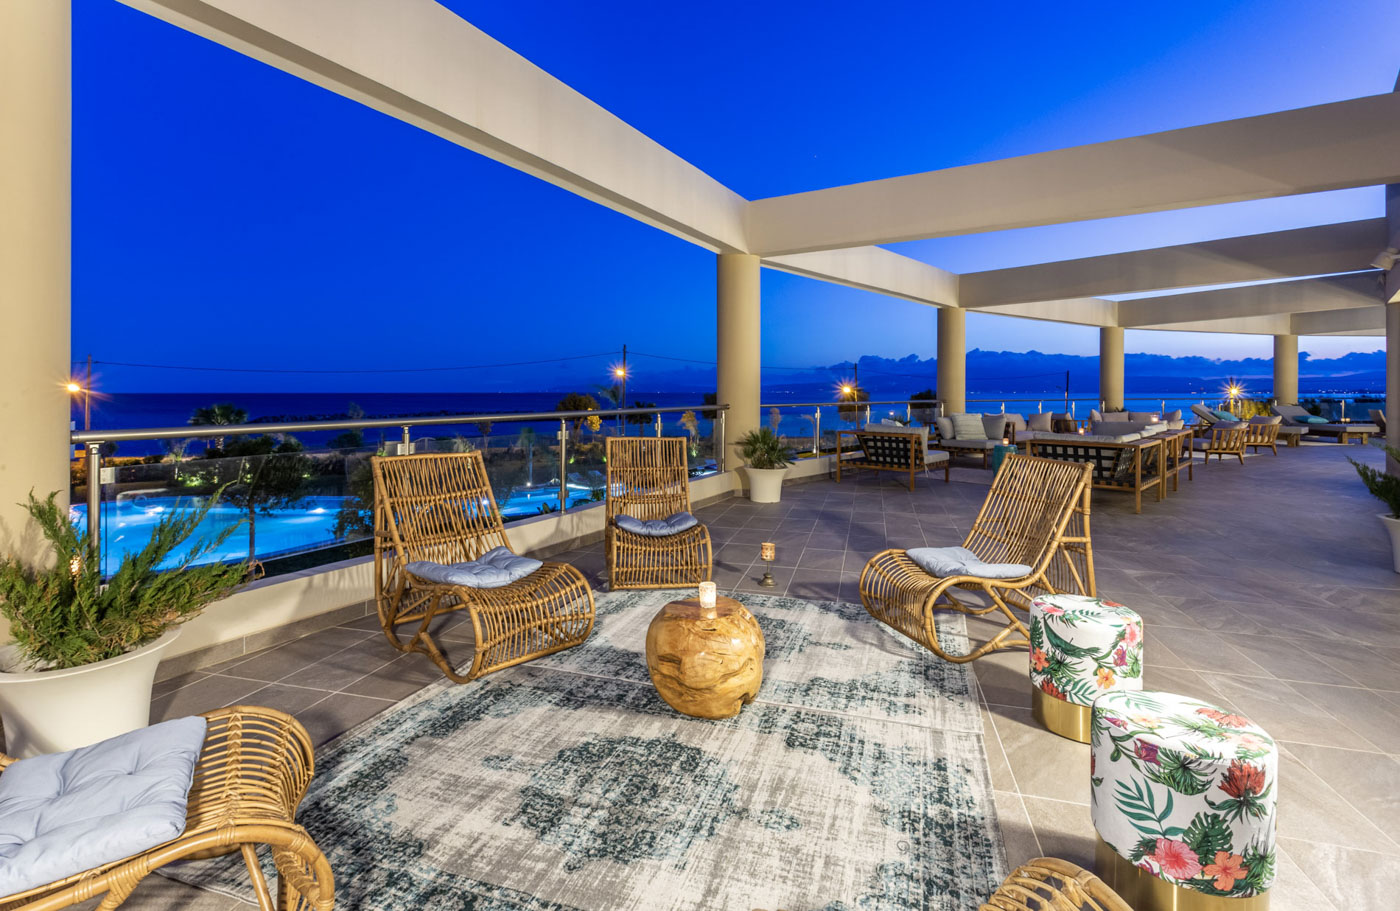 Elysian luxury hotel and spa Kalamata relax zone chairs evening